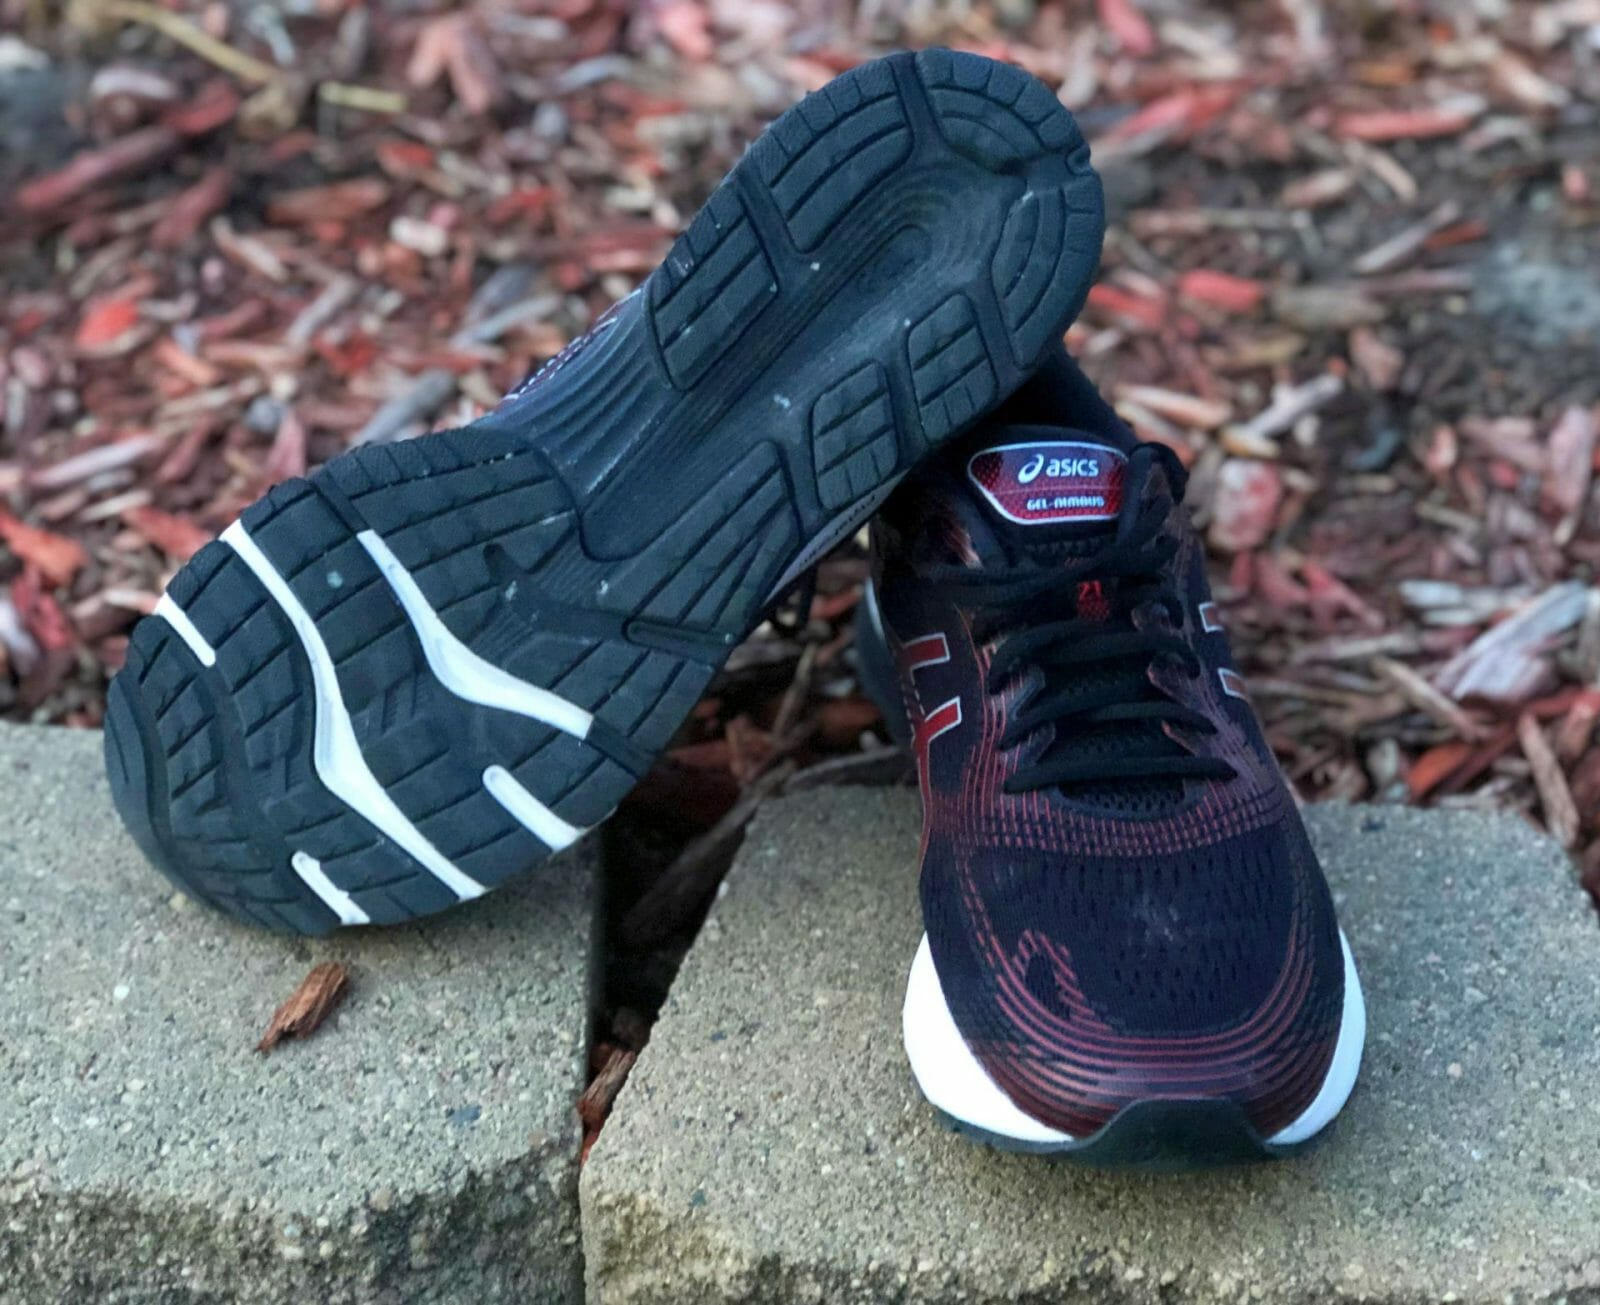 Asics Gel Nimbus 21 Review | Running Shoes Guru